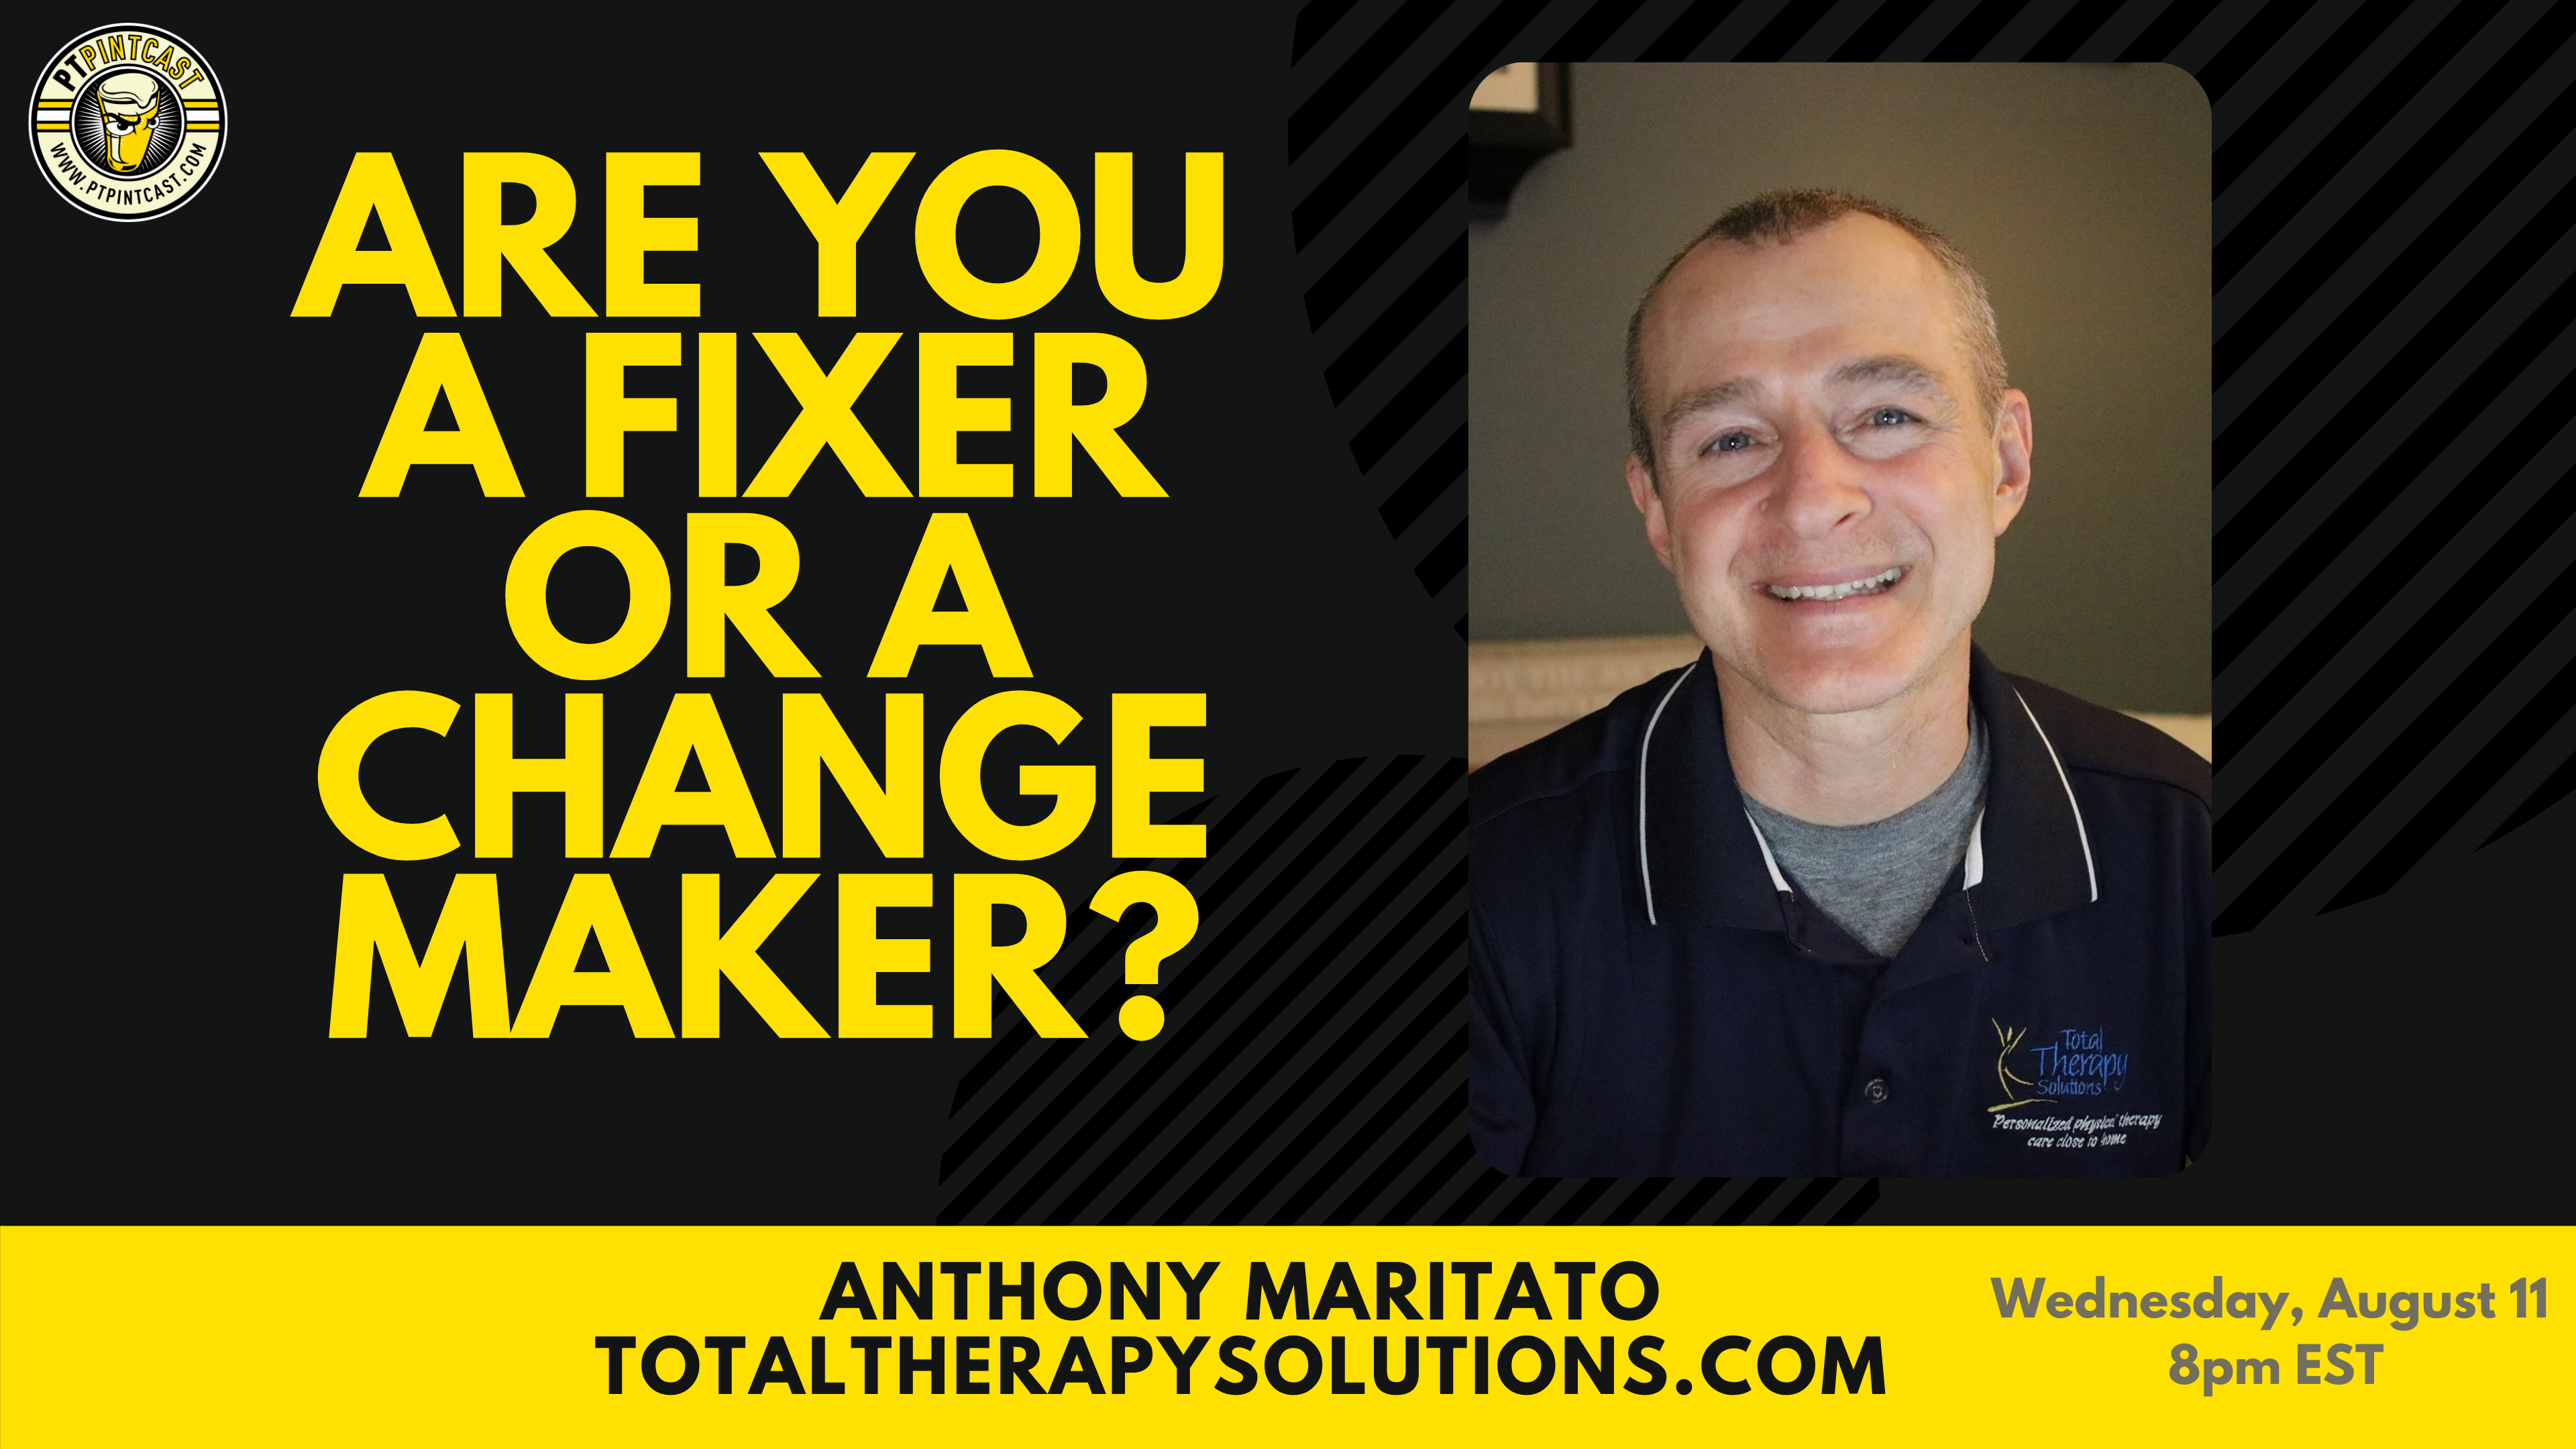 Should You Try And Fix Or Make Change?